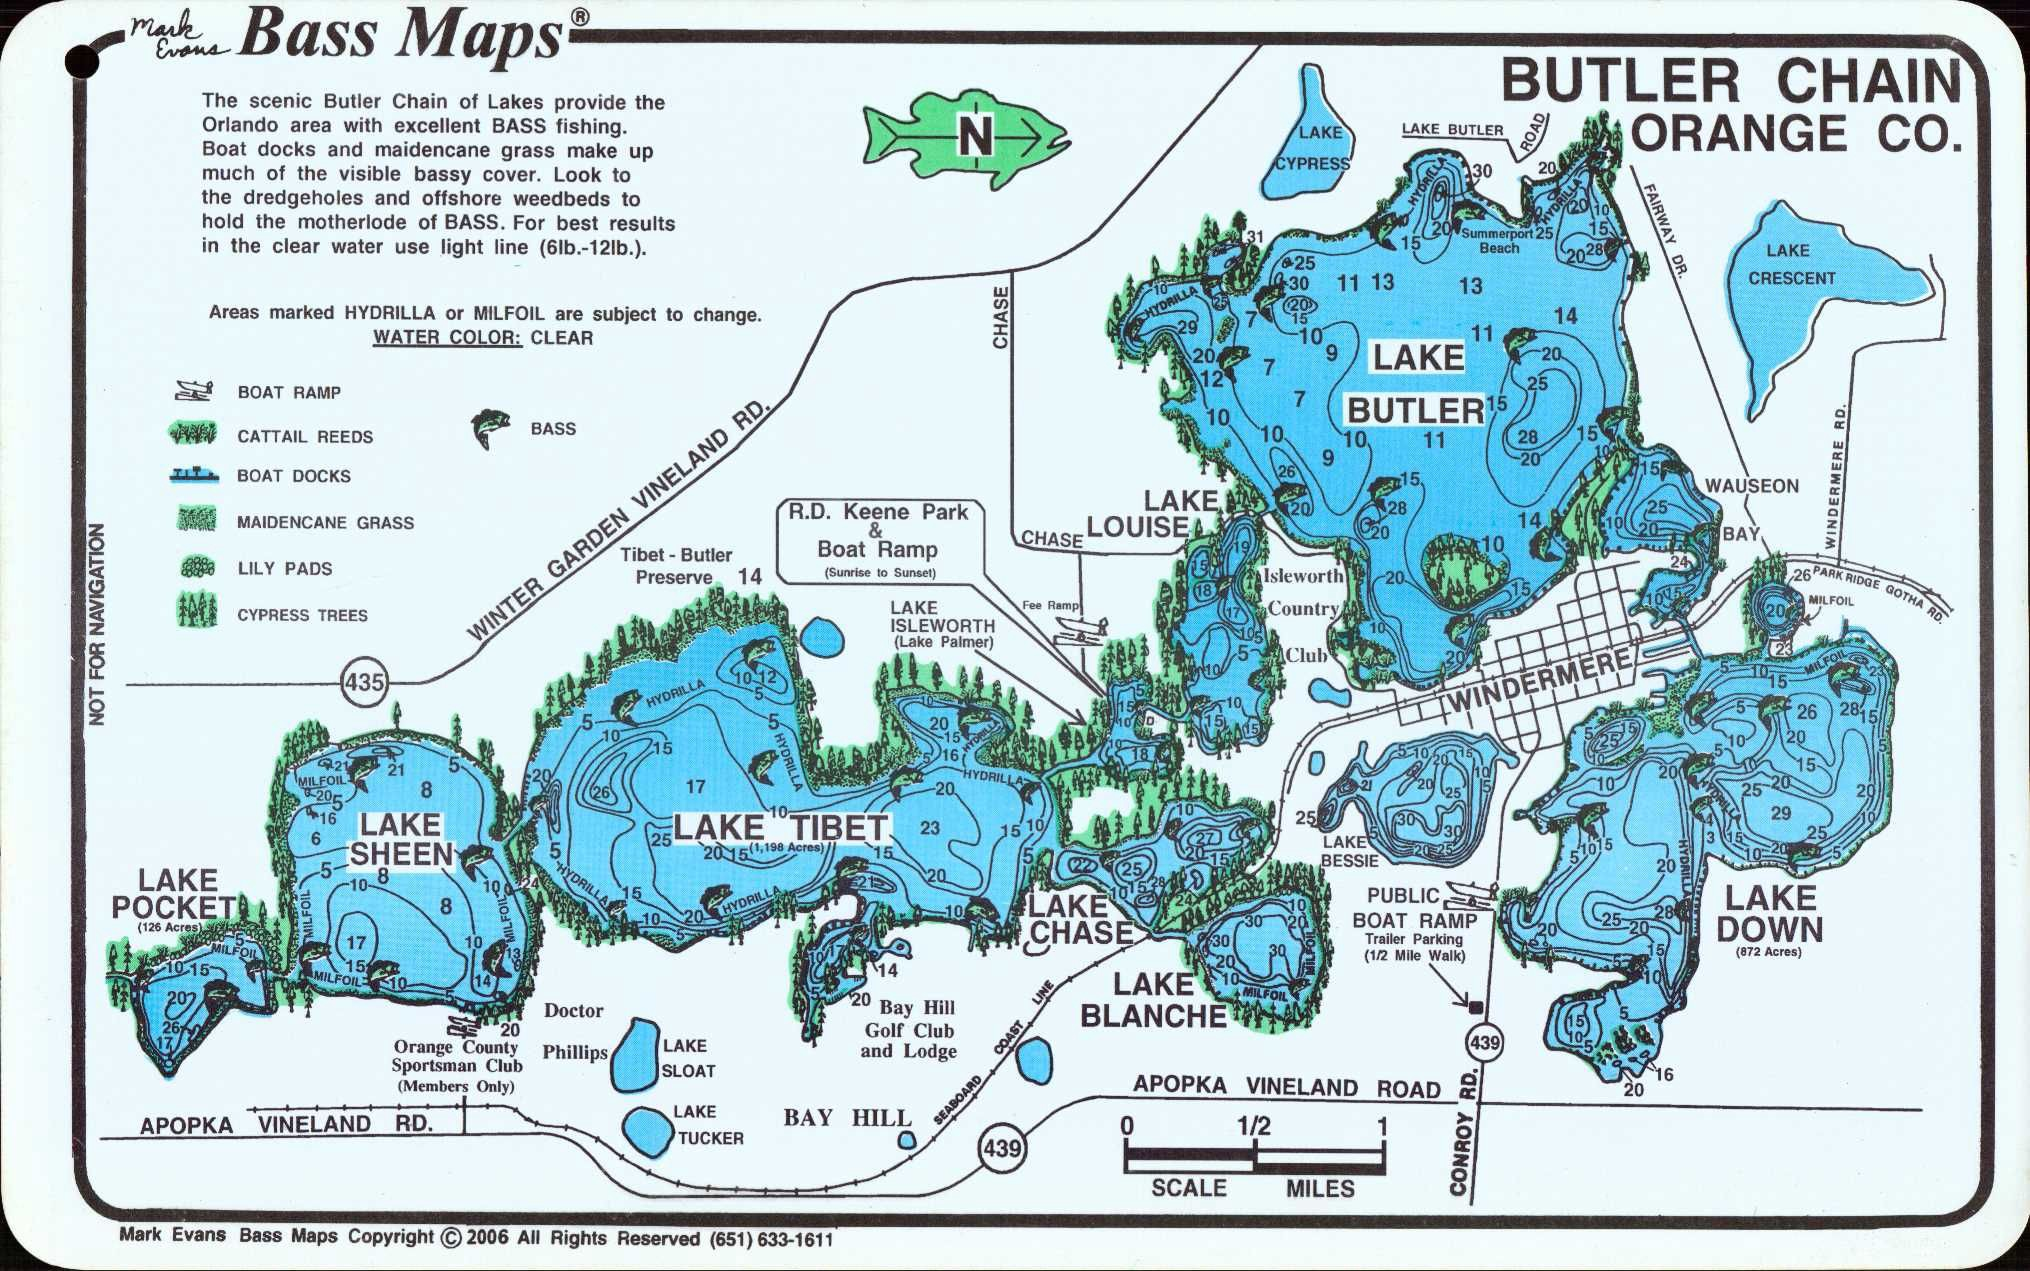 Map of the Butler Chain of Lakes